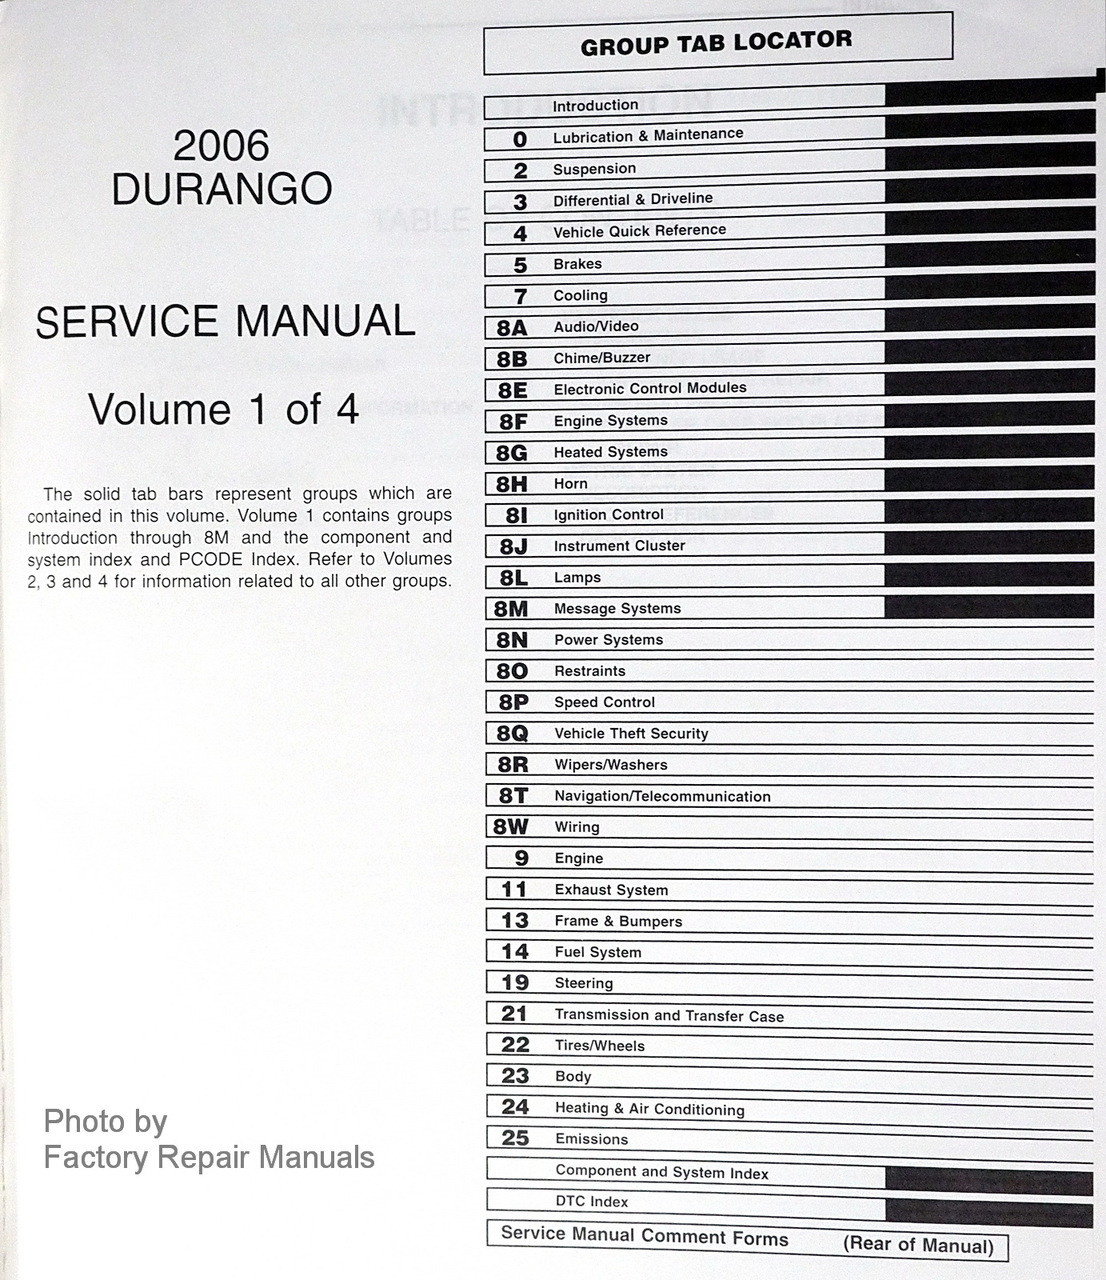 2006 Dodge Durango Factory Service Manuals Original Shop Repair